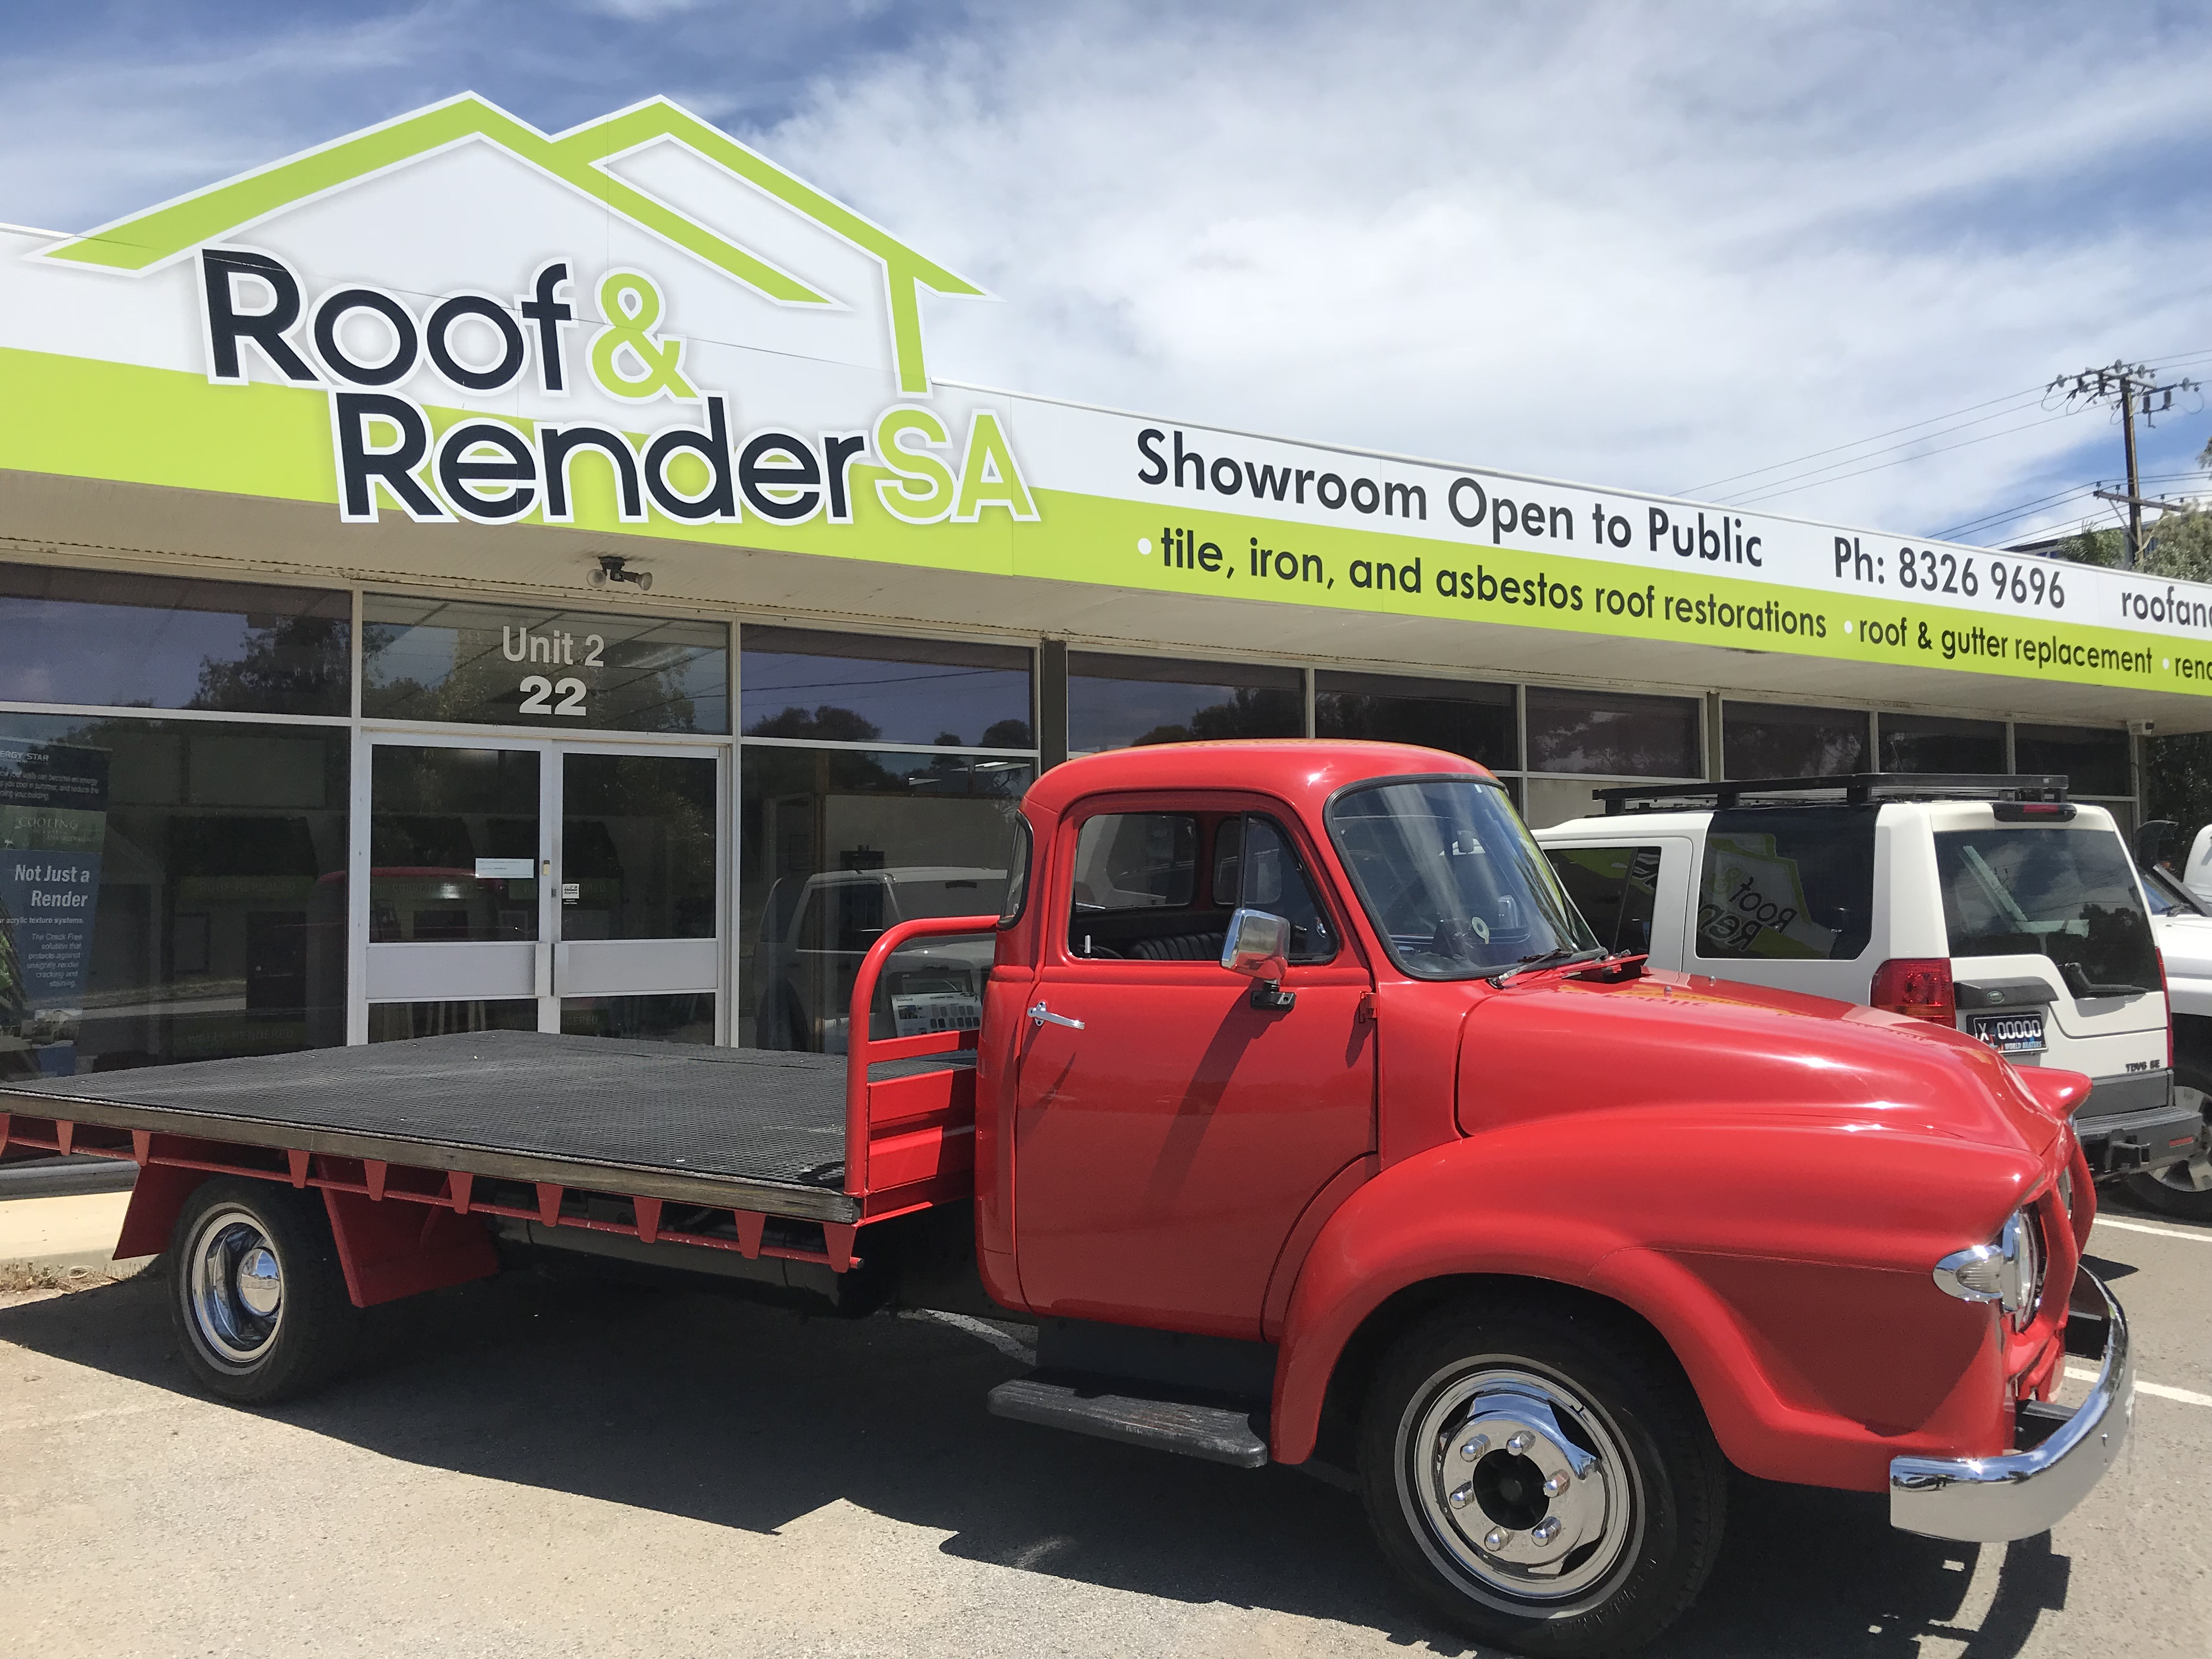 Roof and render shop front